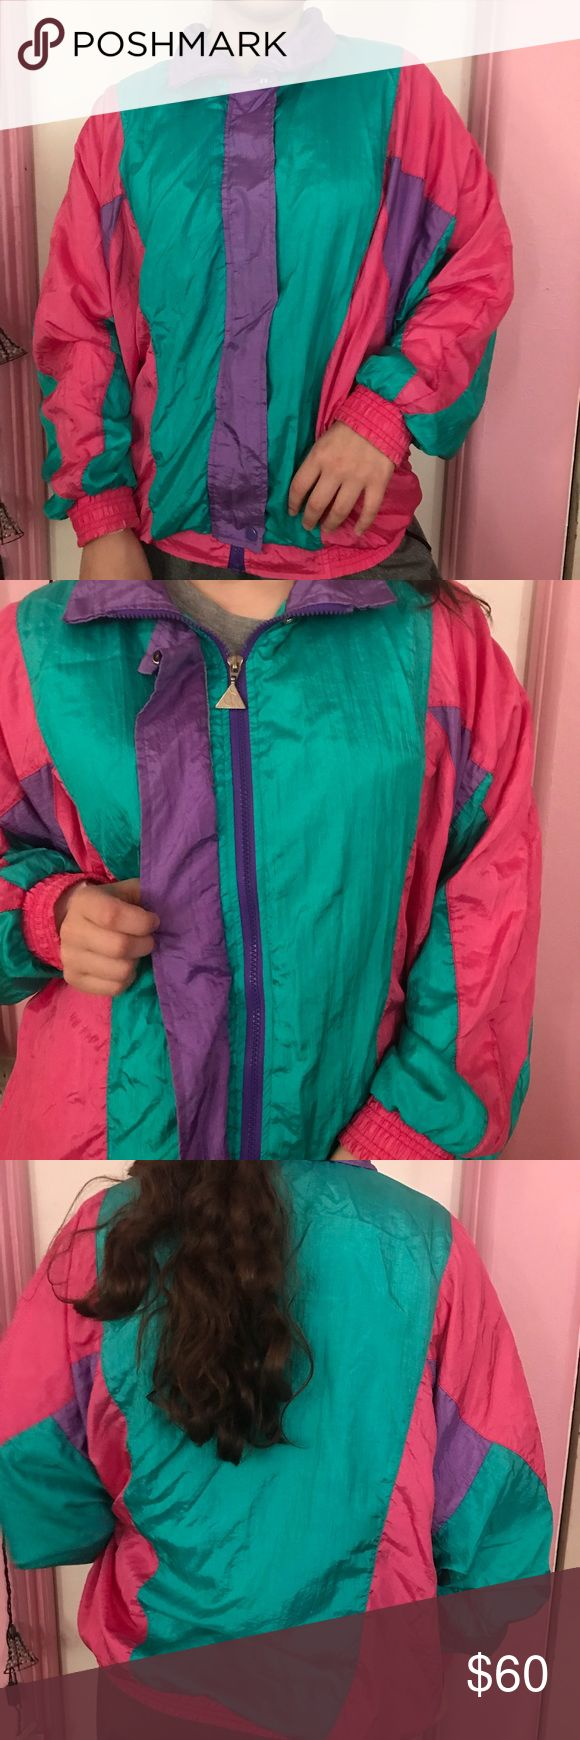 80s Vintage Color Block Windbreaker This is an 80s Vintage Color Block windbreaker. This style is very on trend right now and being sold by several stores including Urban Outfitters.  The last picture (not for sale) is a picture of urban outfitters SOLD OUT Jacket that looks very similar to this listed one. Perfect addition to your autumn and winter wardrobe. Interested? Make me an offer! Vintage Jackets & Coats